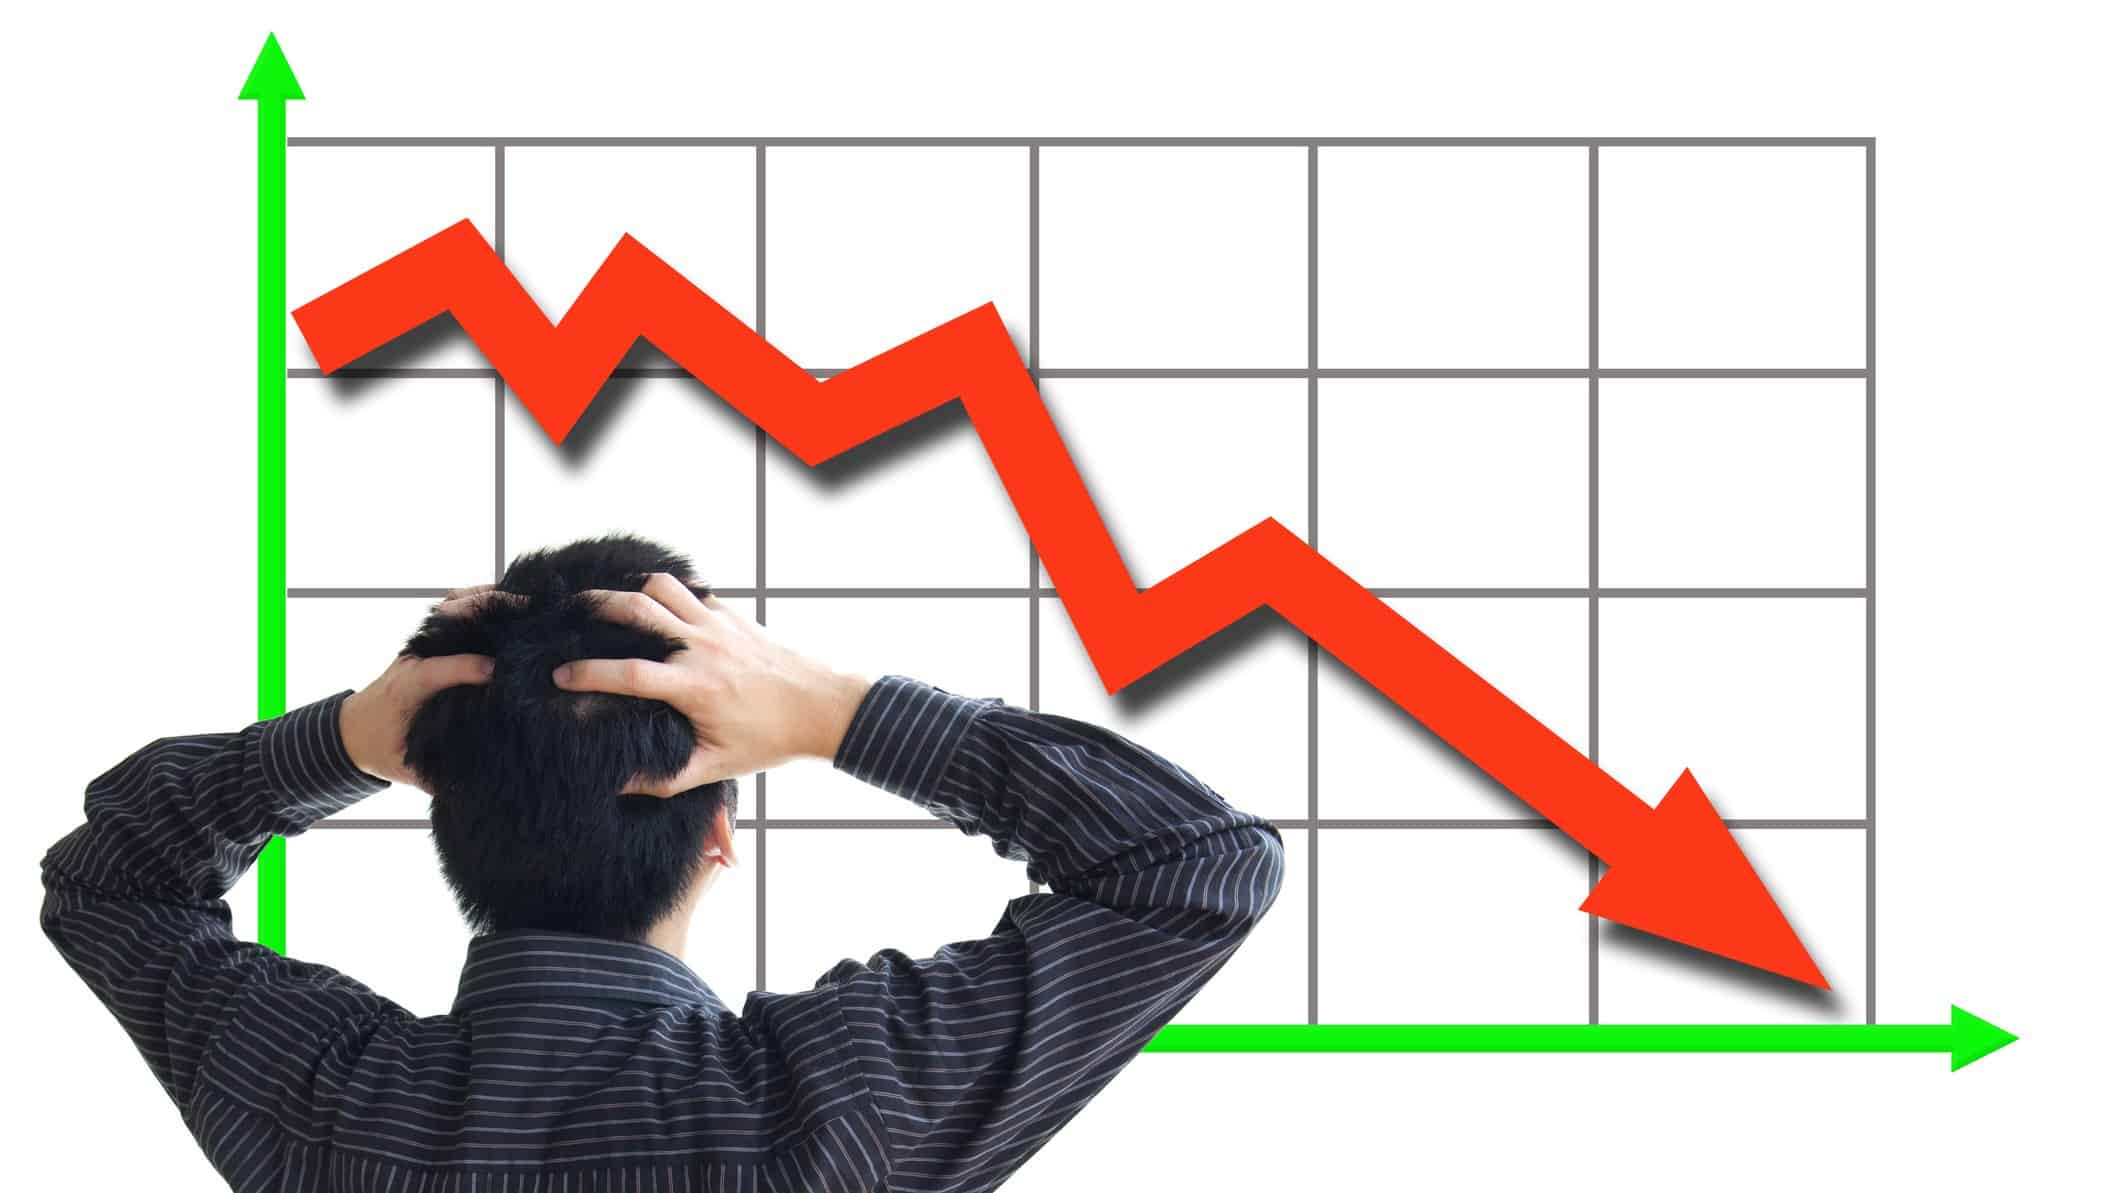 man with hands on head looking at chart with red downward arrow, stock market crash